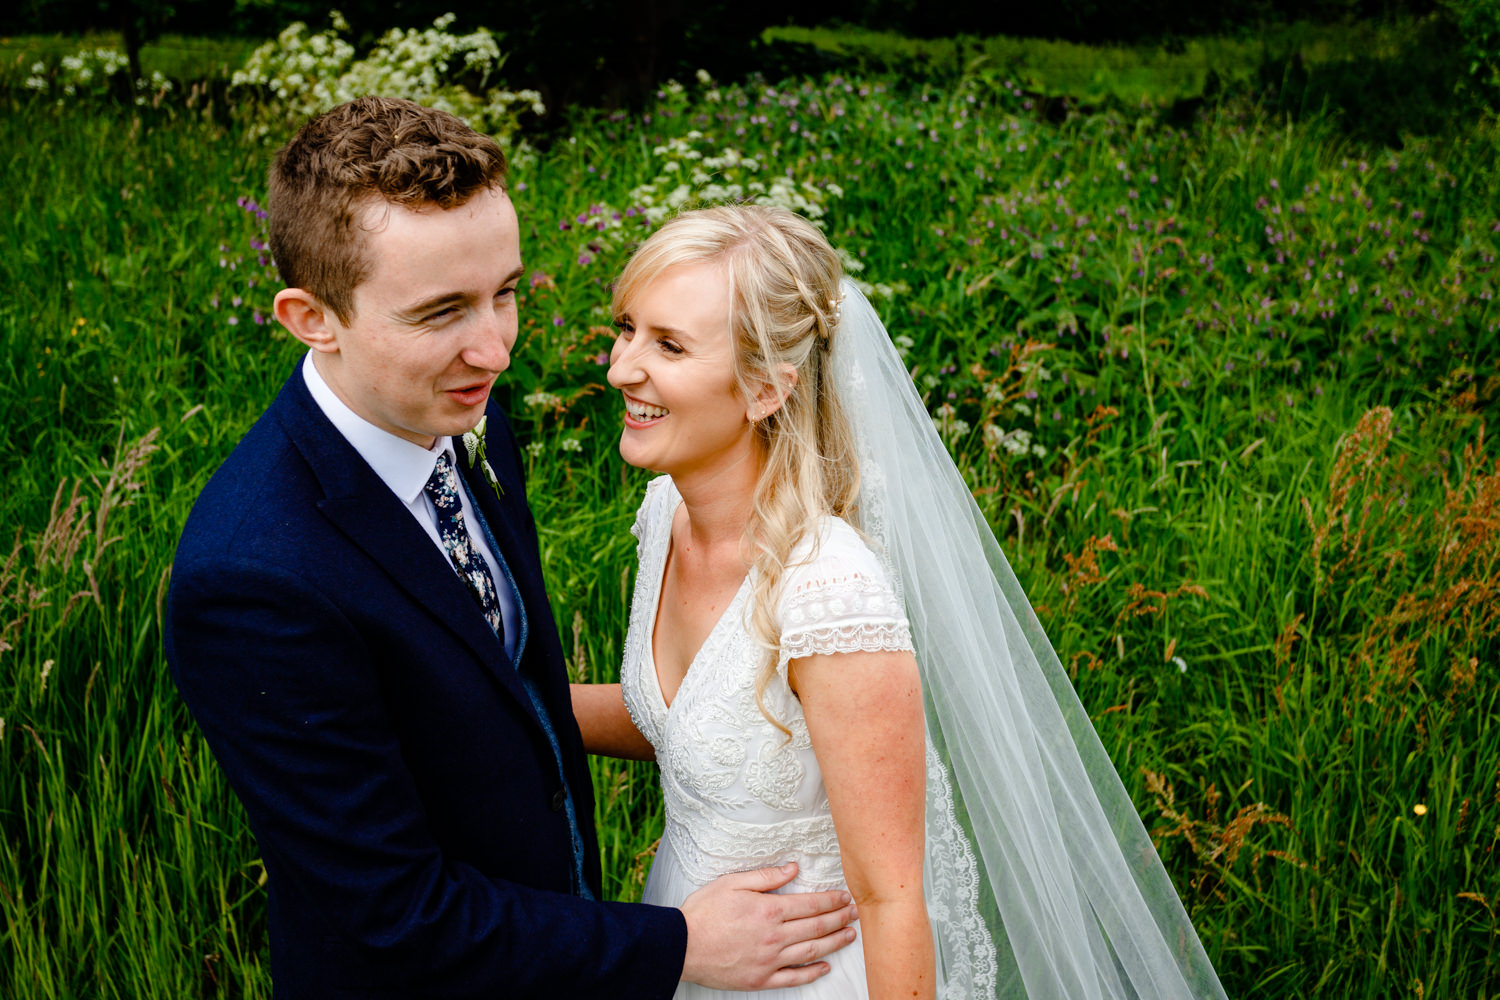 Katie-Luke-Huddersfield-wedding-photographer-Katie-Luke062.jpg